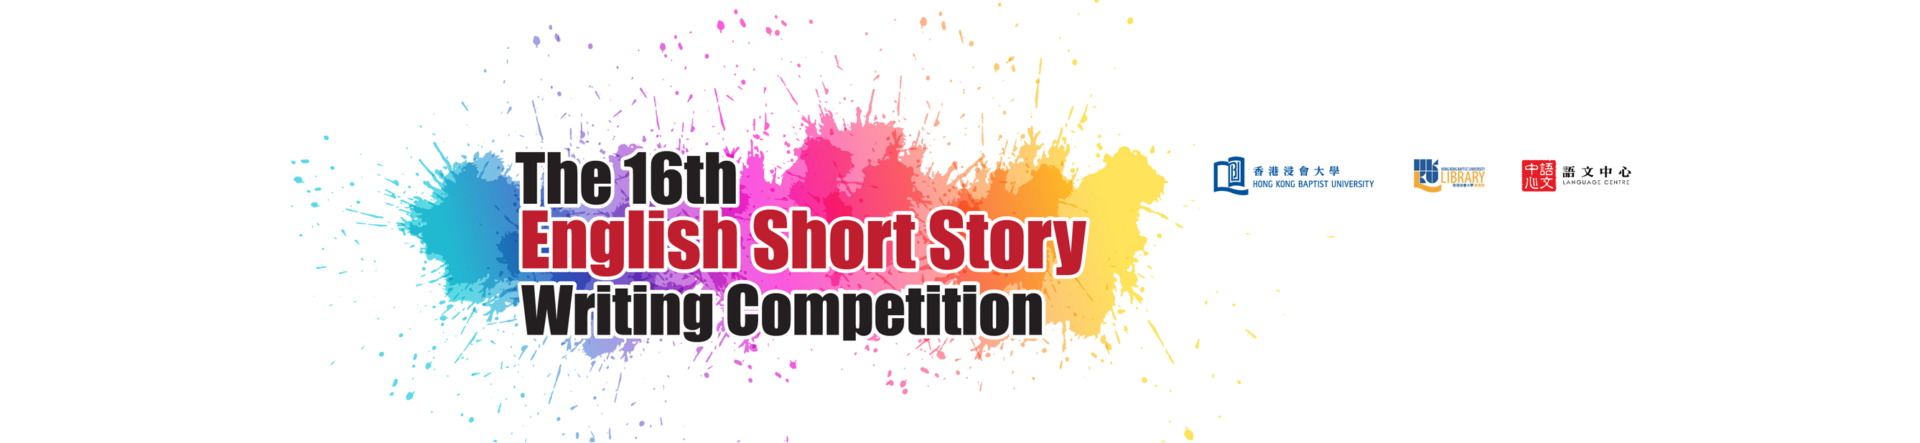 The 16th English Short Story Writing Competition: 2021 Winners Exhibition